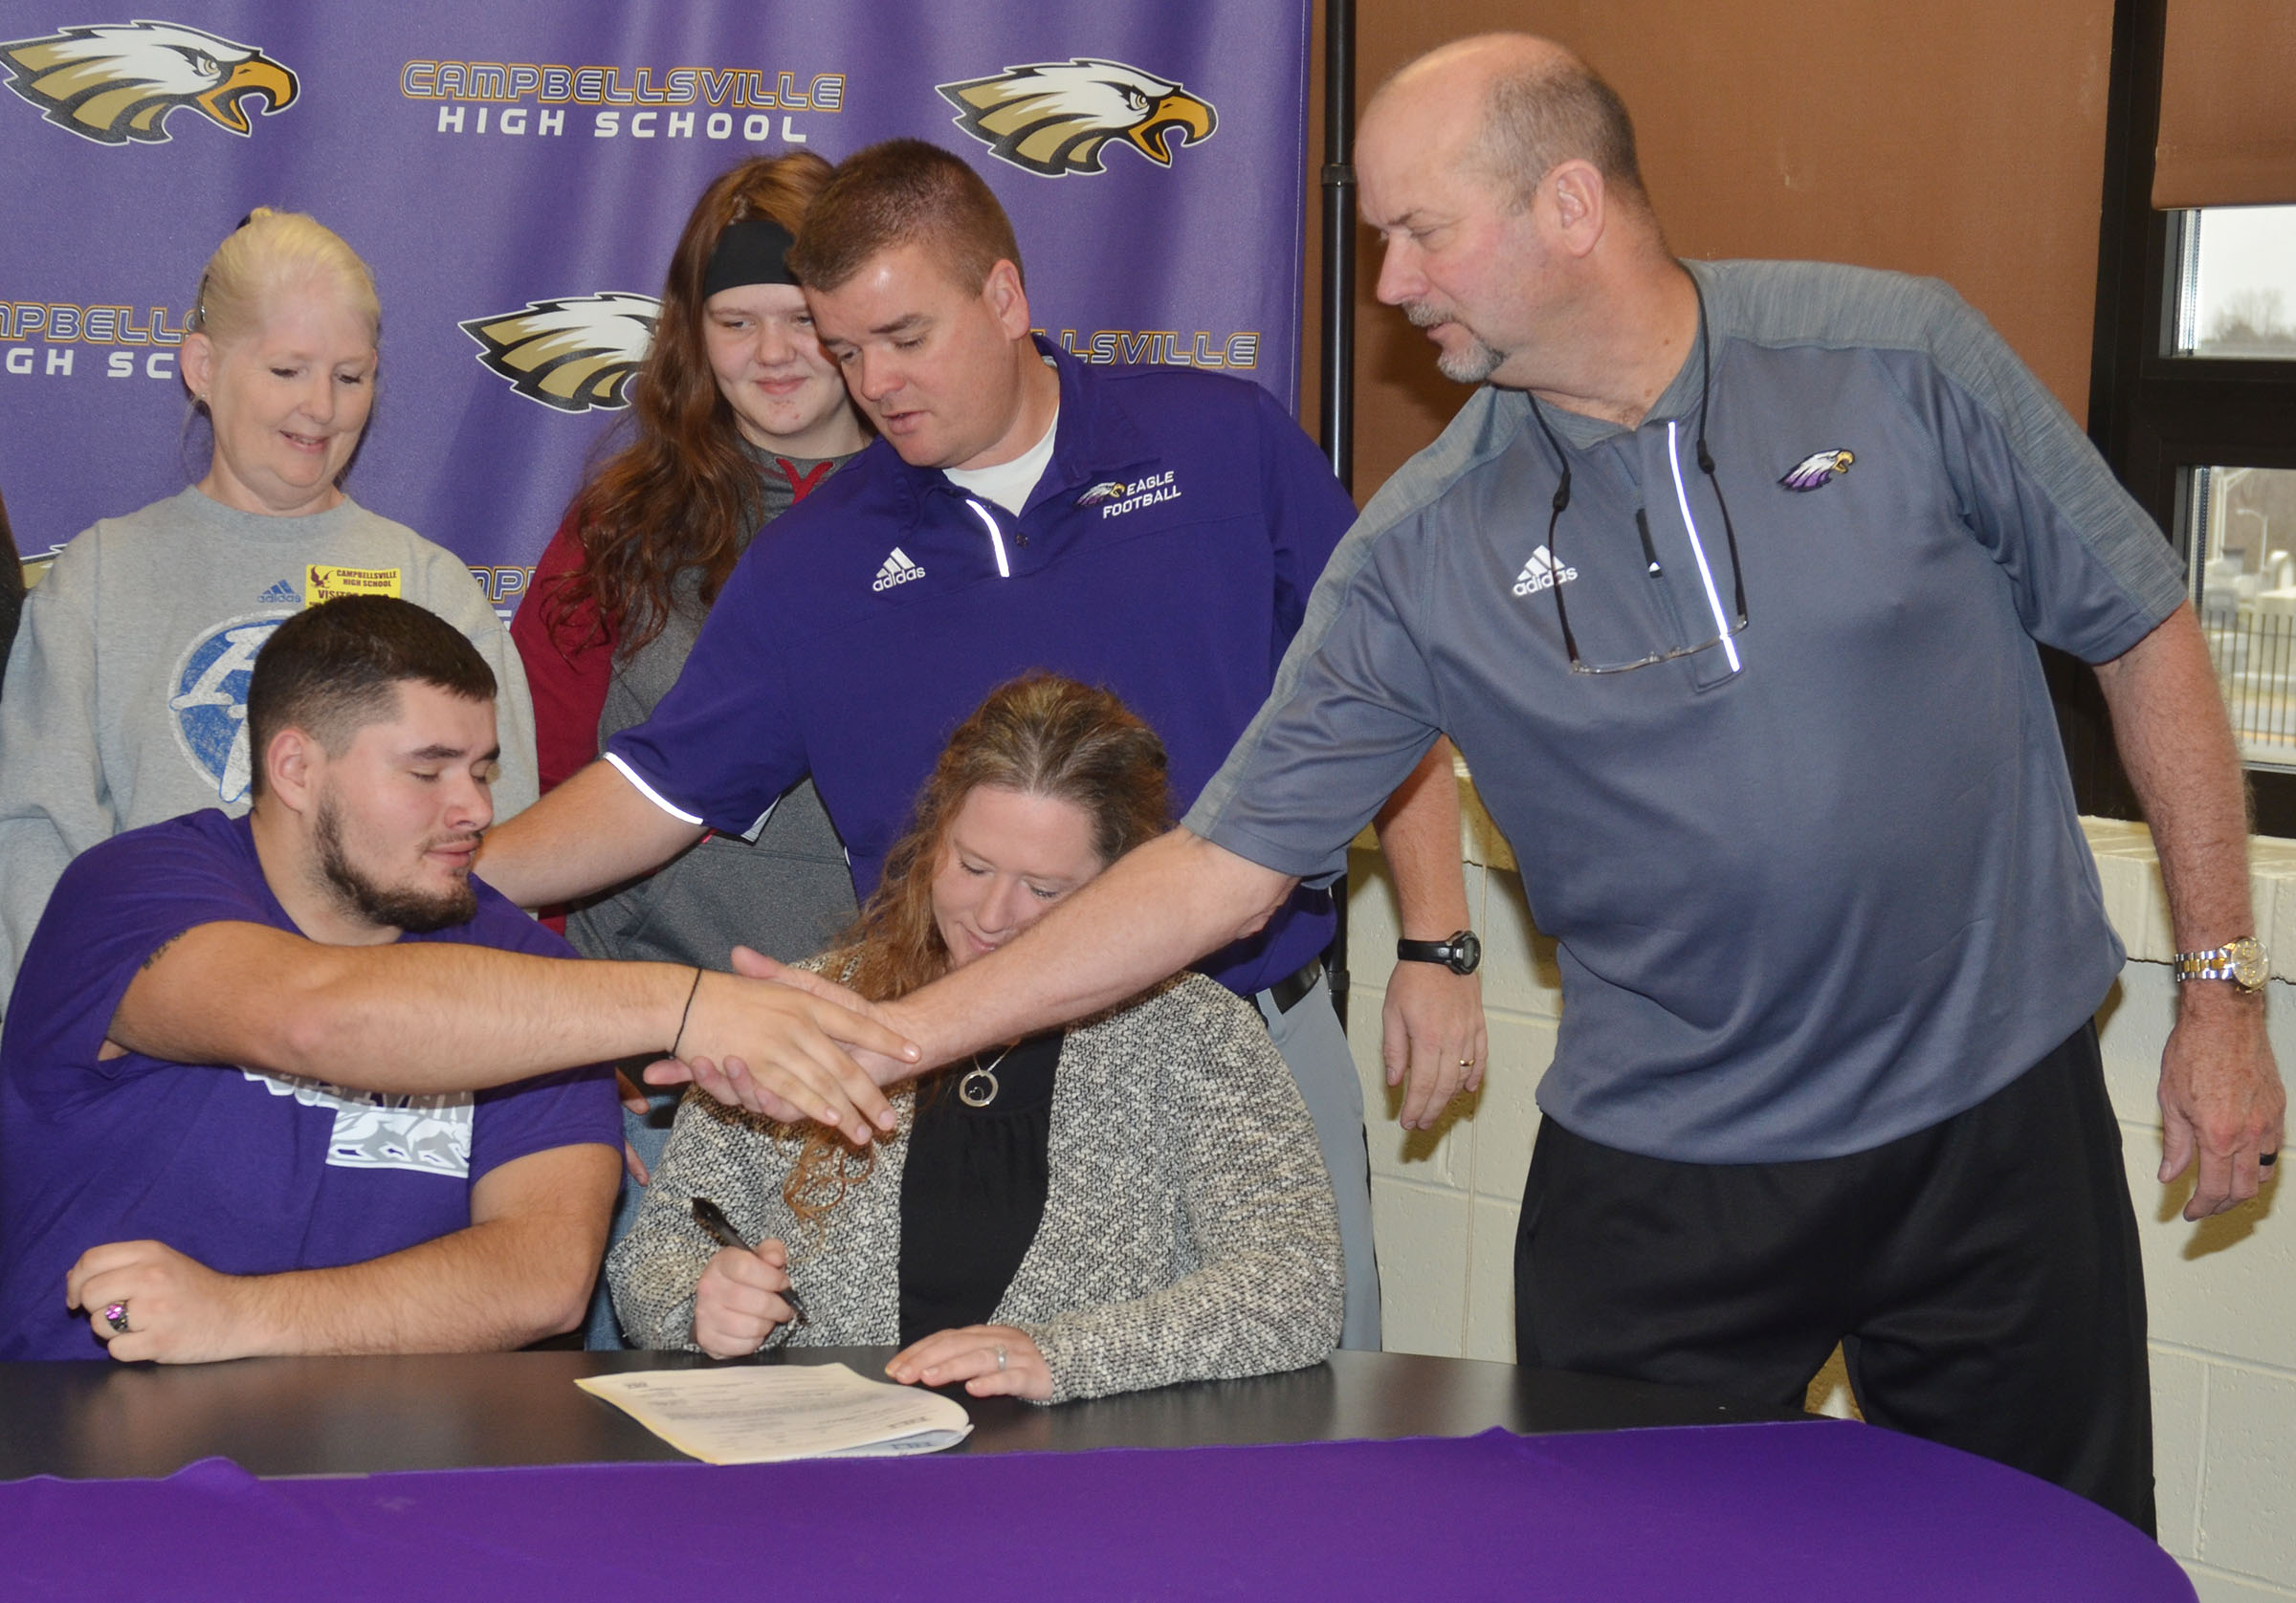 Campbellsville High School football player Logan Brown will continue his academic and football career at Kentucky Wesleyan College this fall. He officially signed his letter of intent on Wednesday, Feb. 1, which was National Signing Day. Above, Brown receives congratulations from CHS head football coach Dale Estes, at left, and CHS Athletic Director Tim Davis.